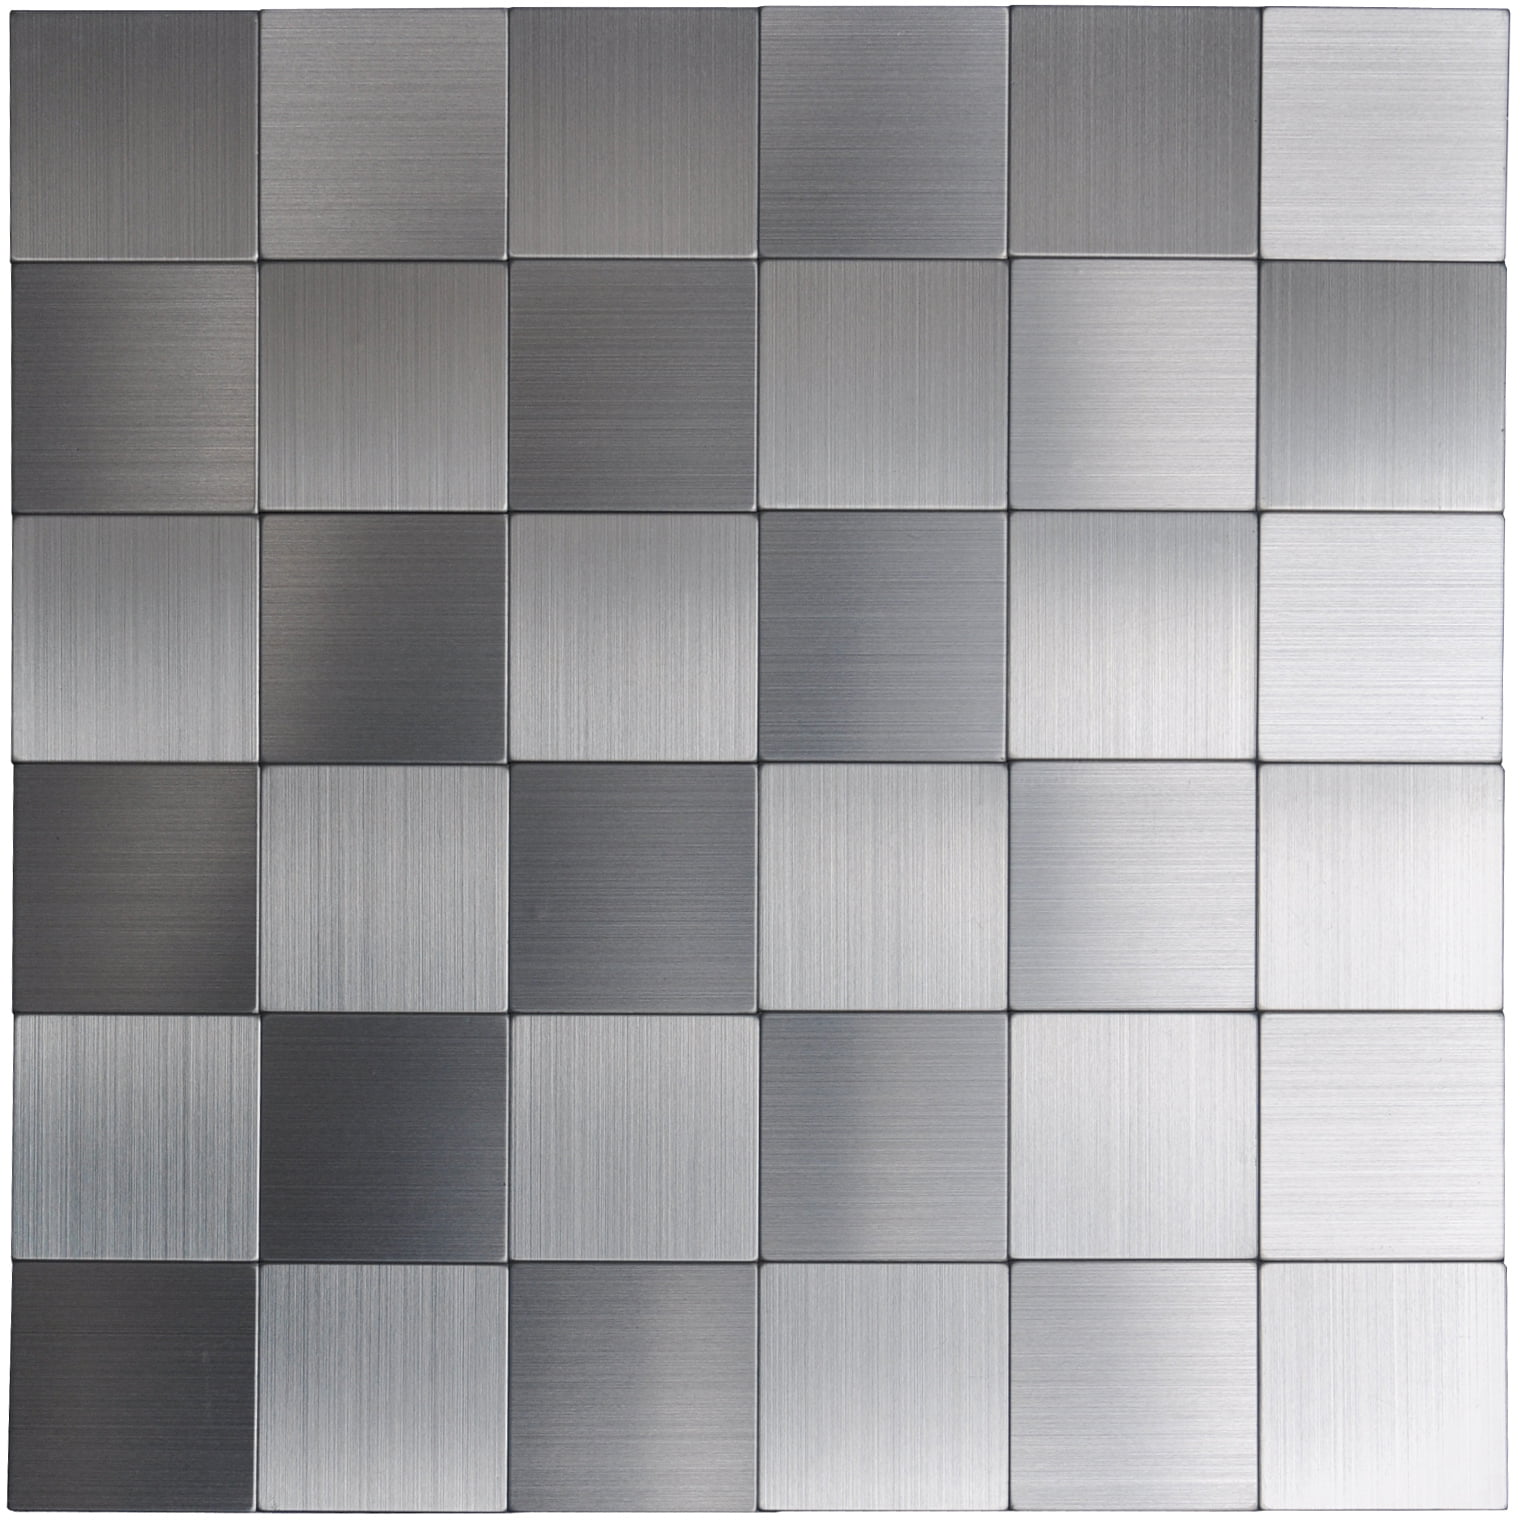 Self Adhesive Metal Tiles 10 Pcs Stainless L And Stick Backsplashes 12x12inch